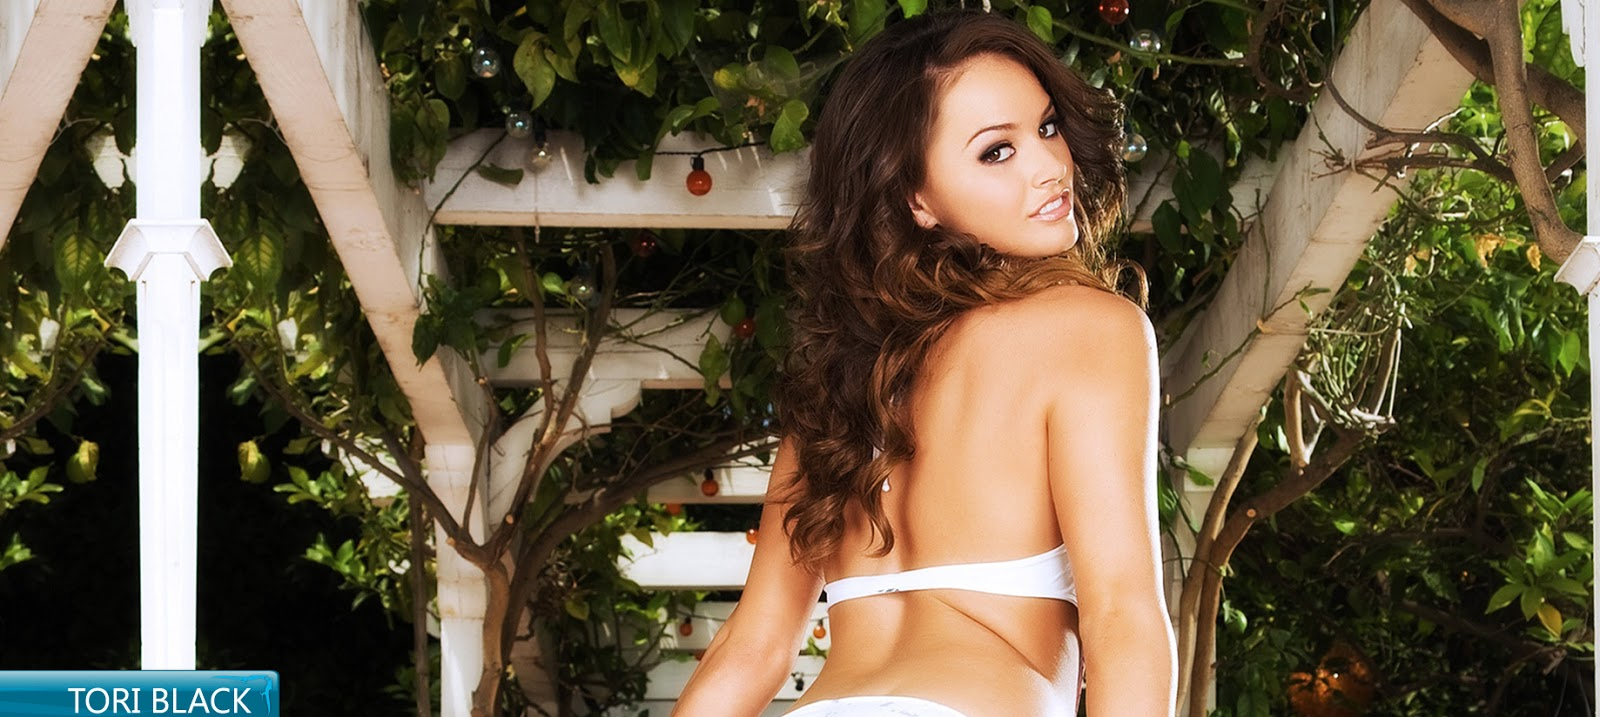 Hot Tori Black Bikini Photoshoot HD